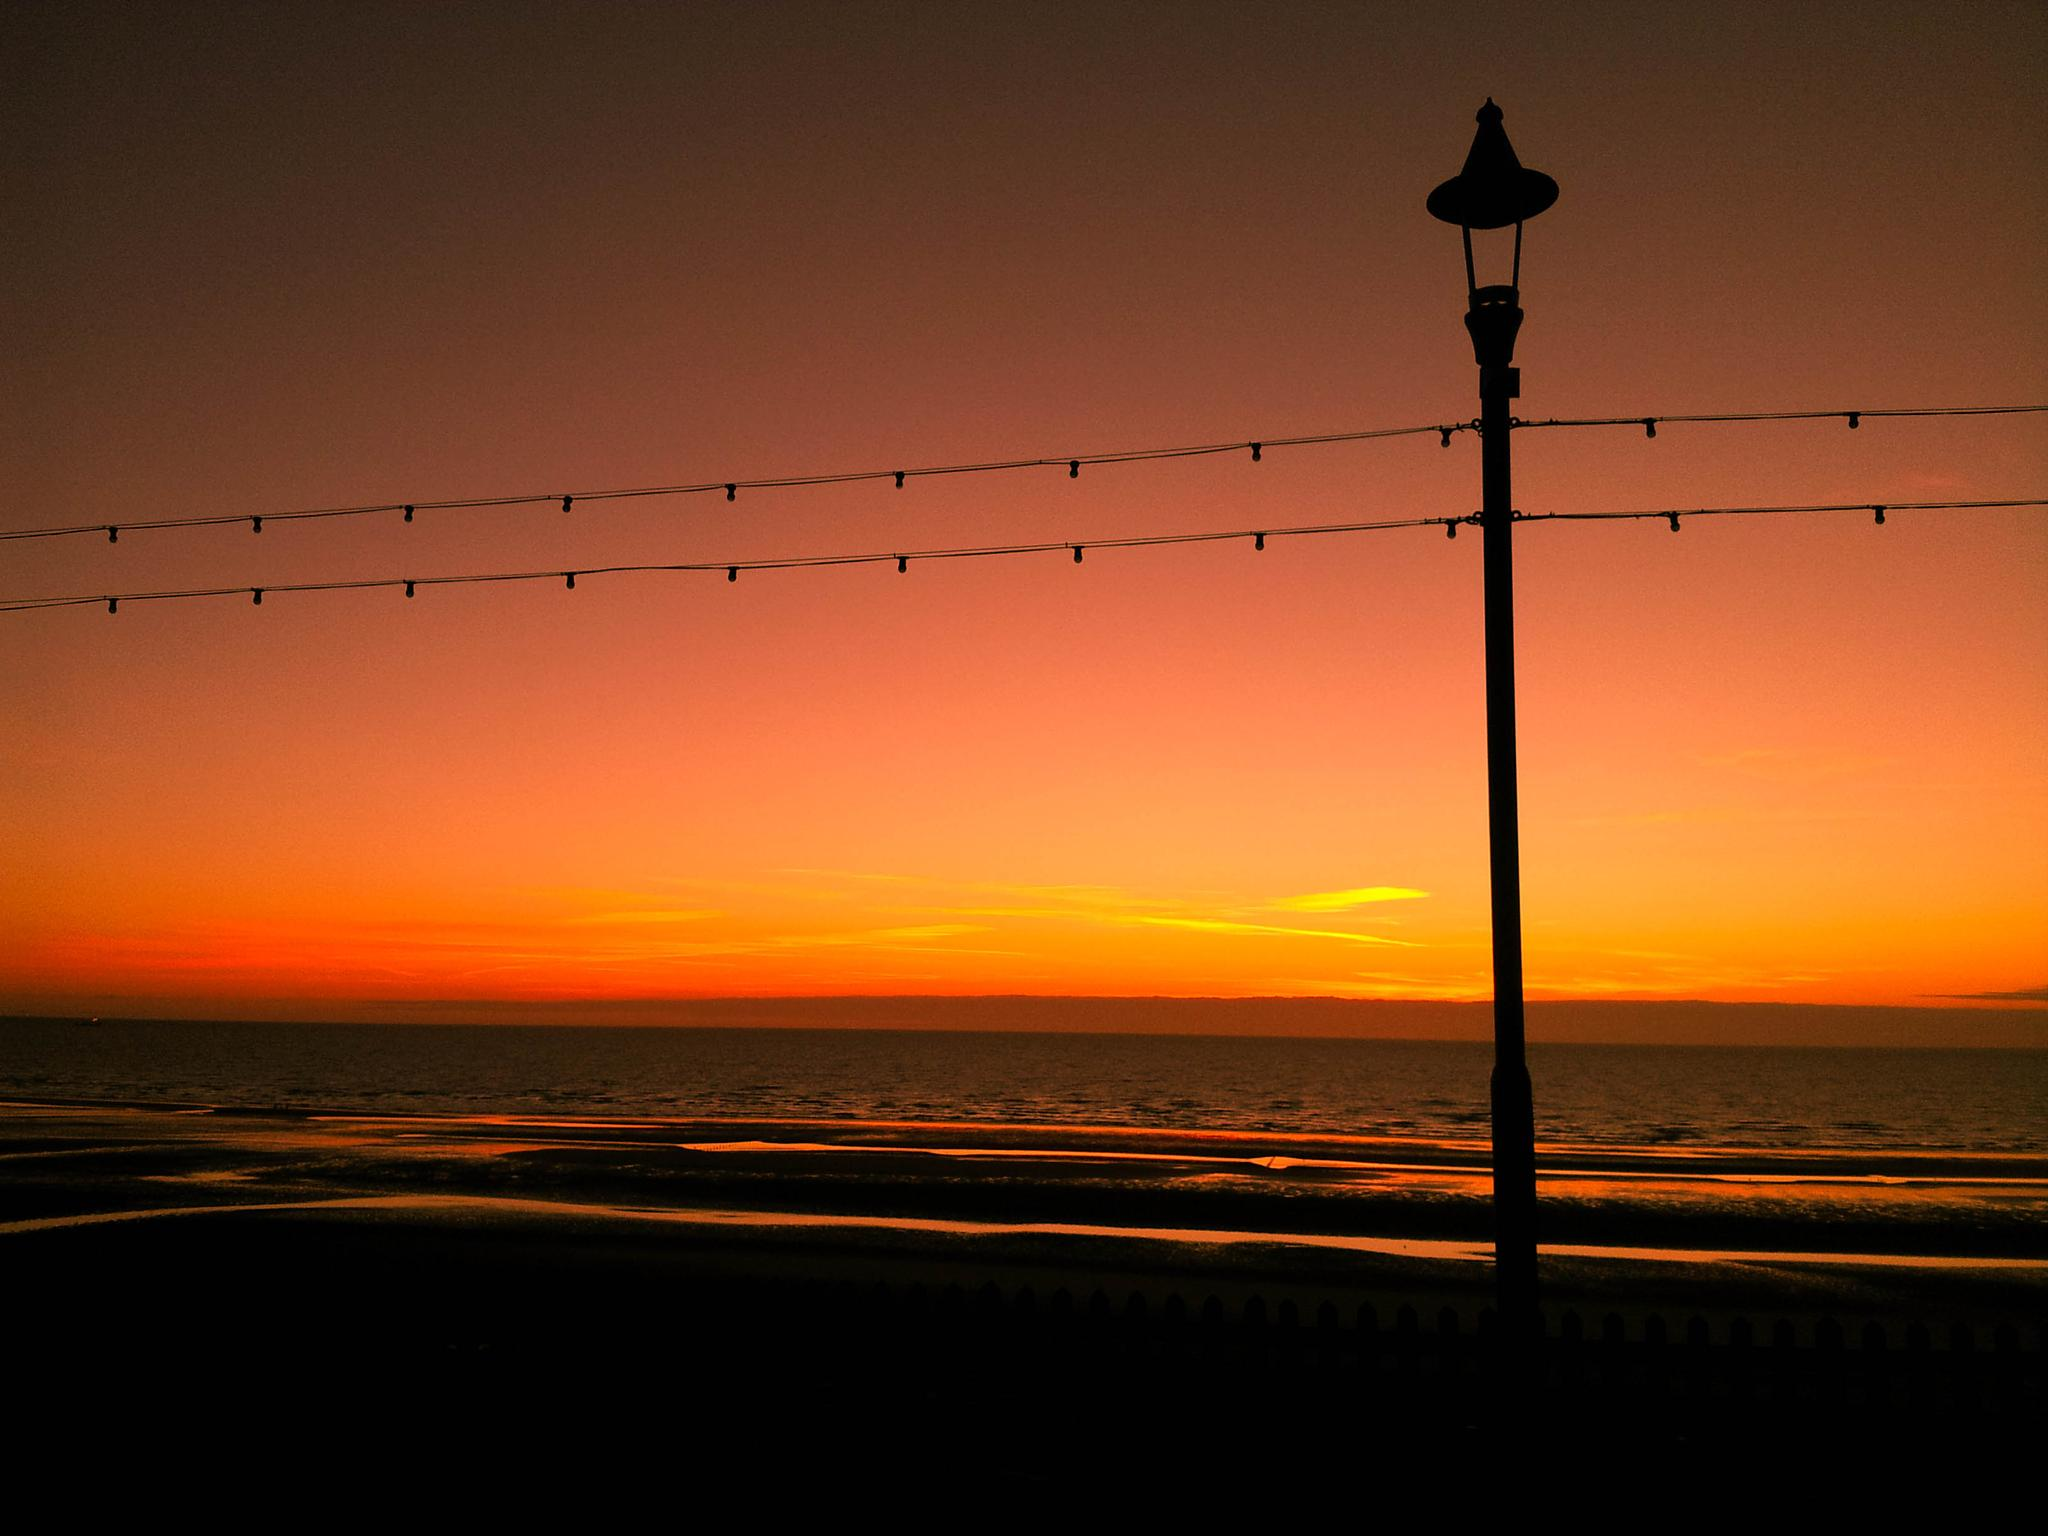 Peaceful Sunset by Jack Luxford